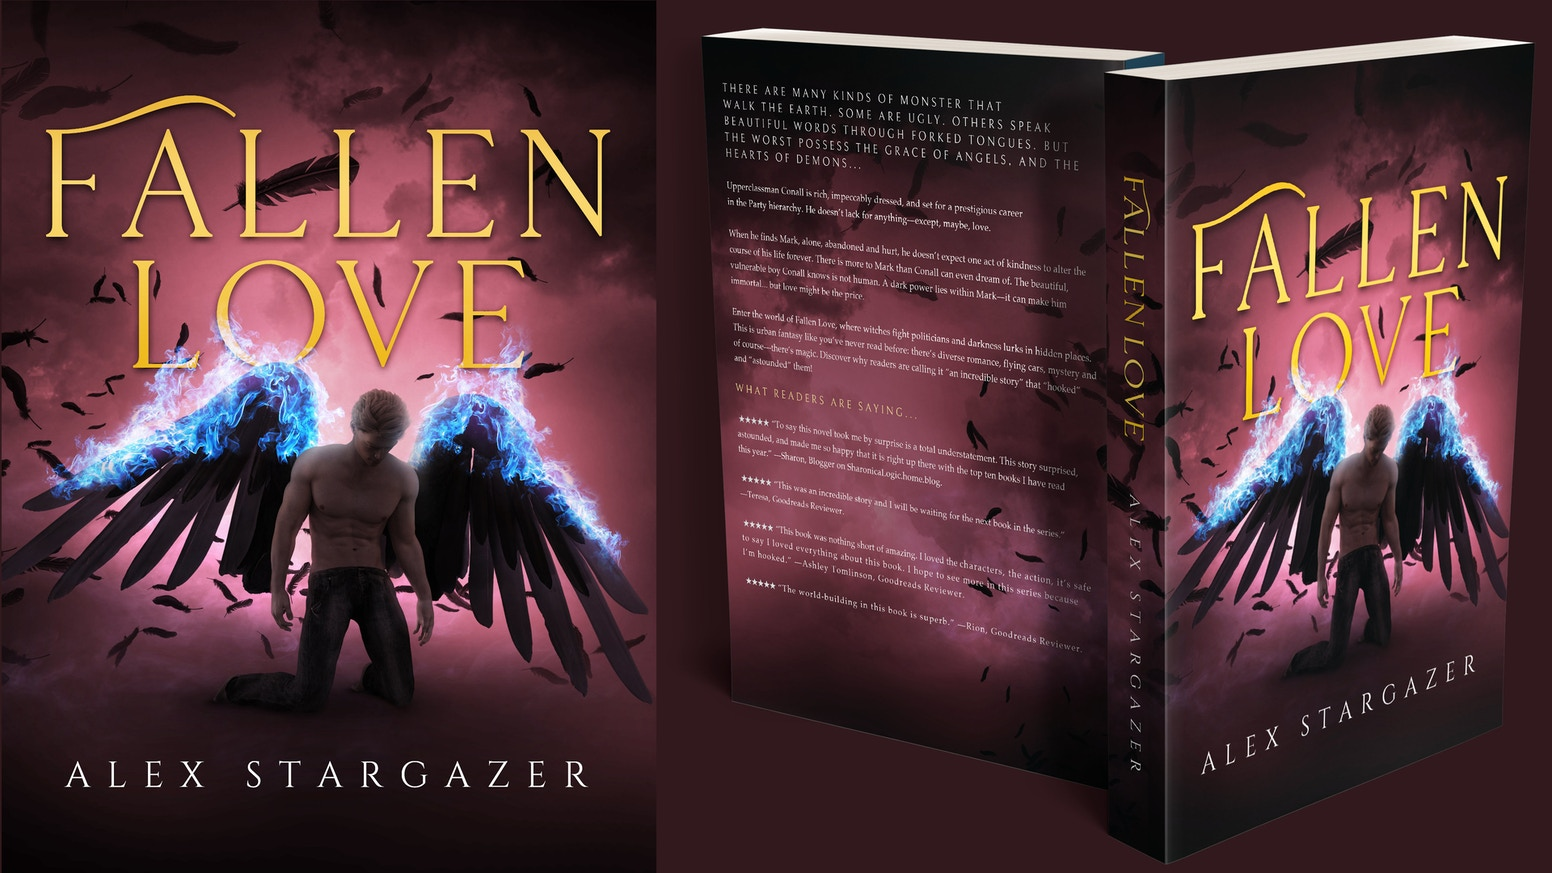 Thank you everyone! Fallen Love is now on sale.